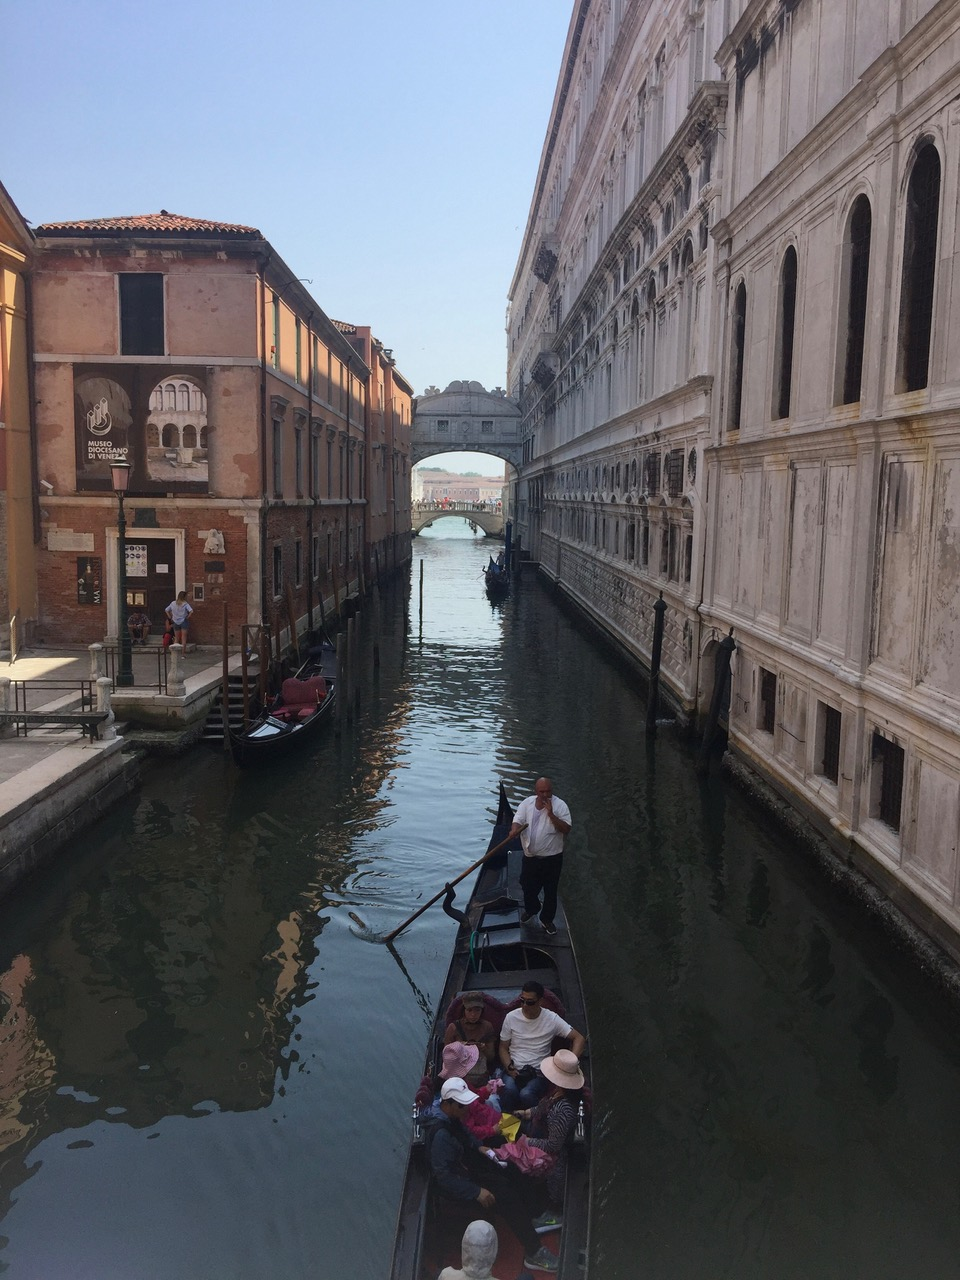 A view of a gondolier in a side canal